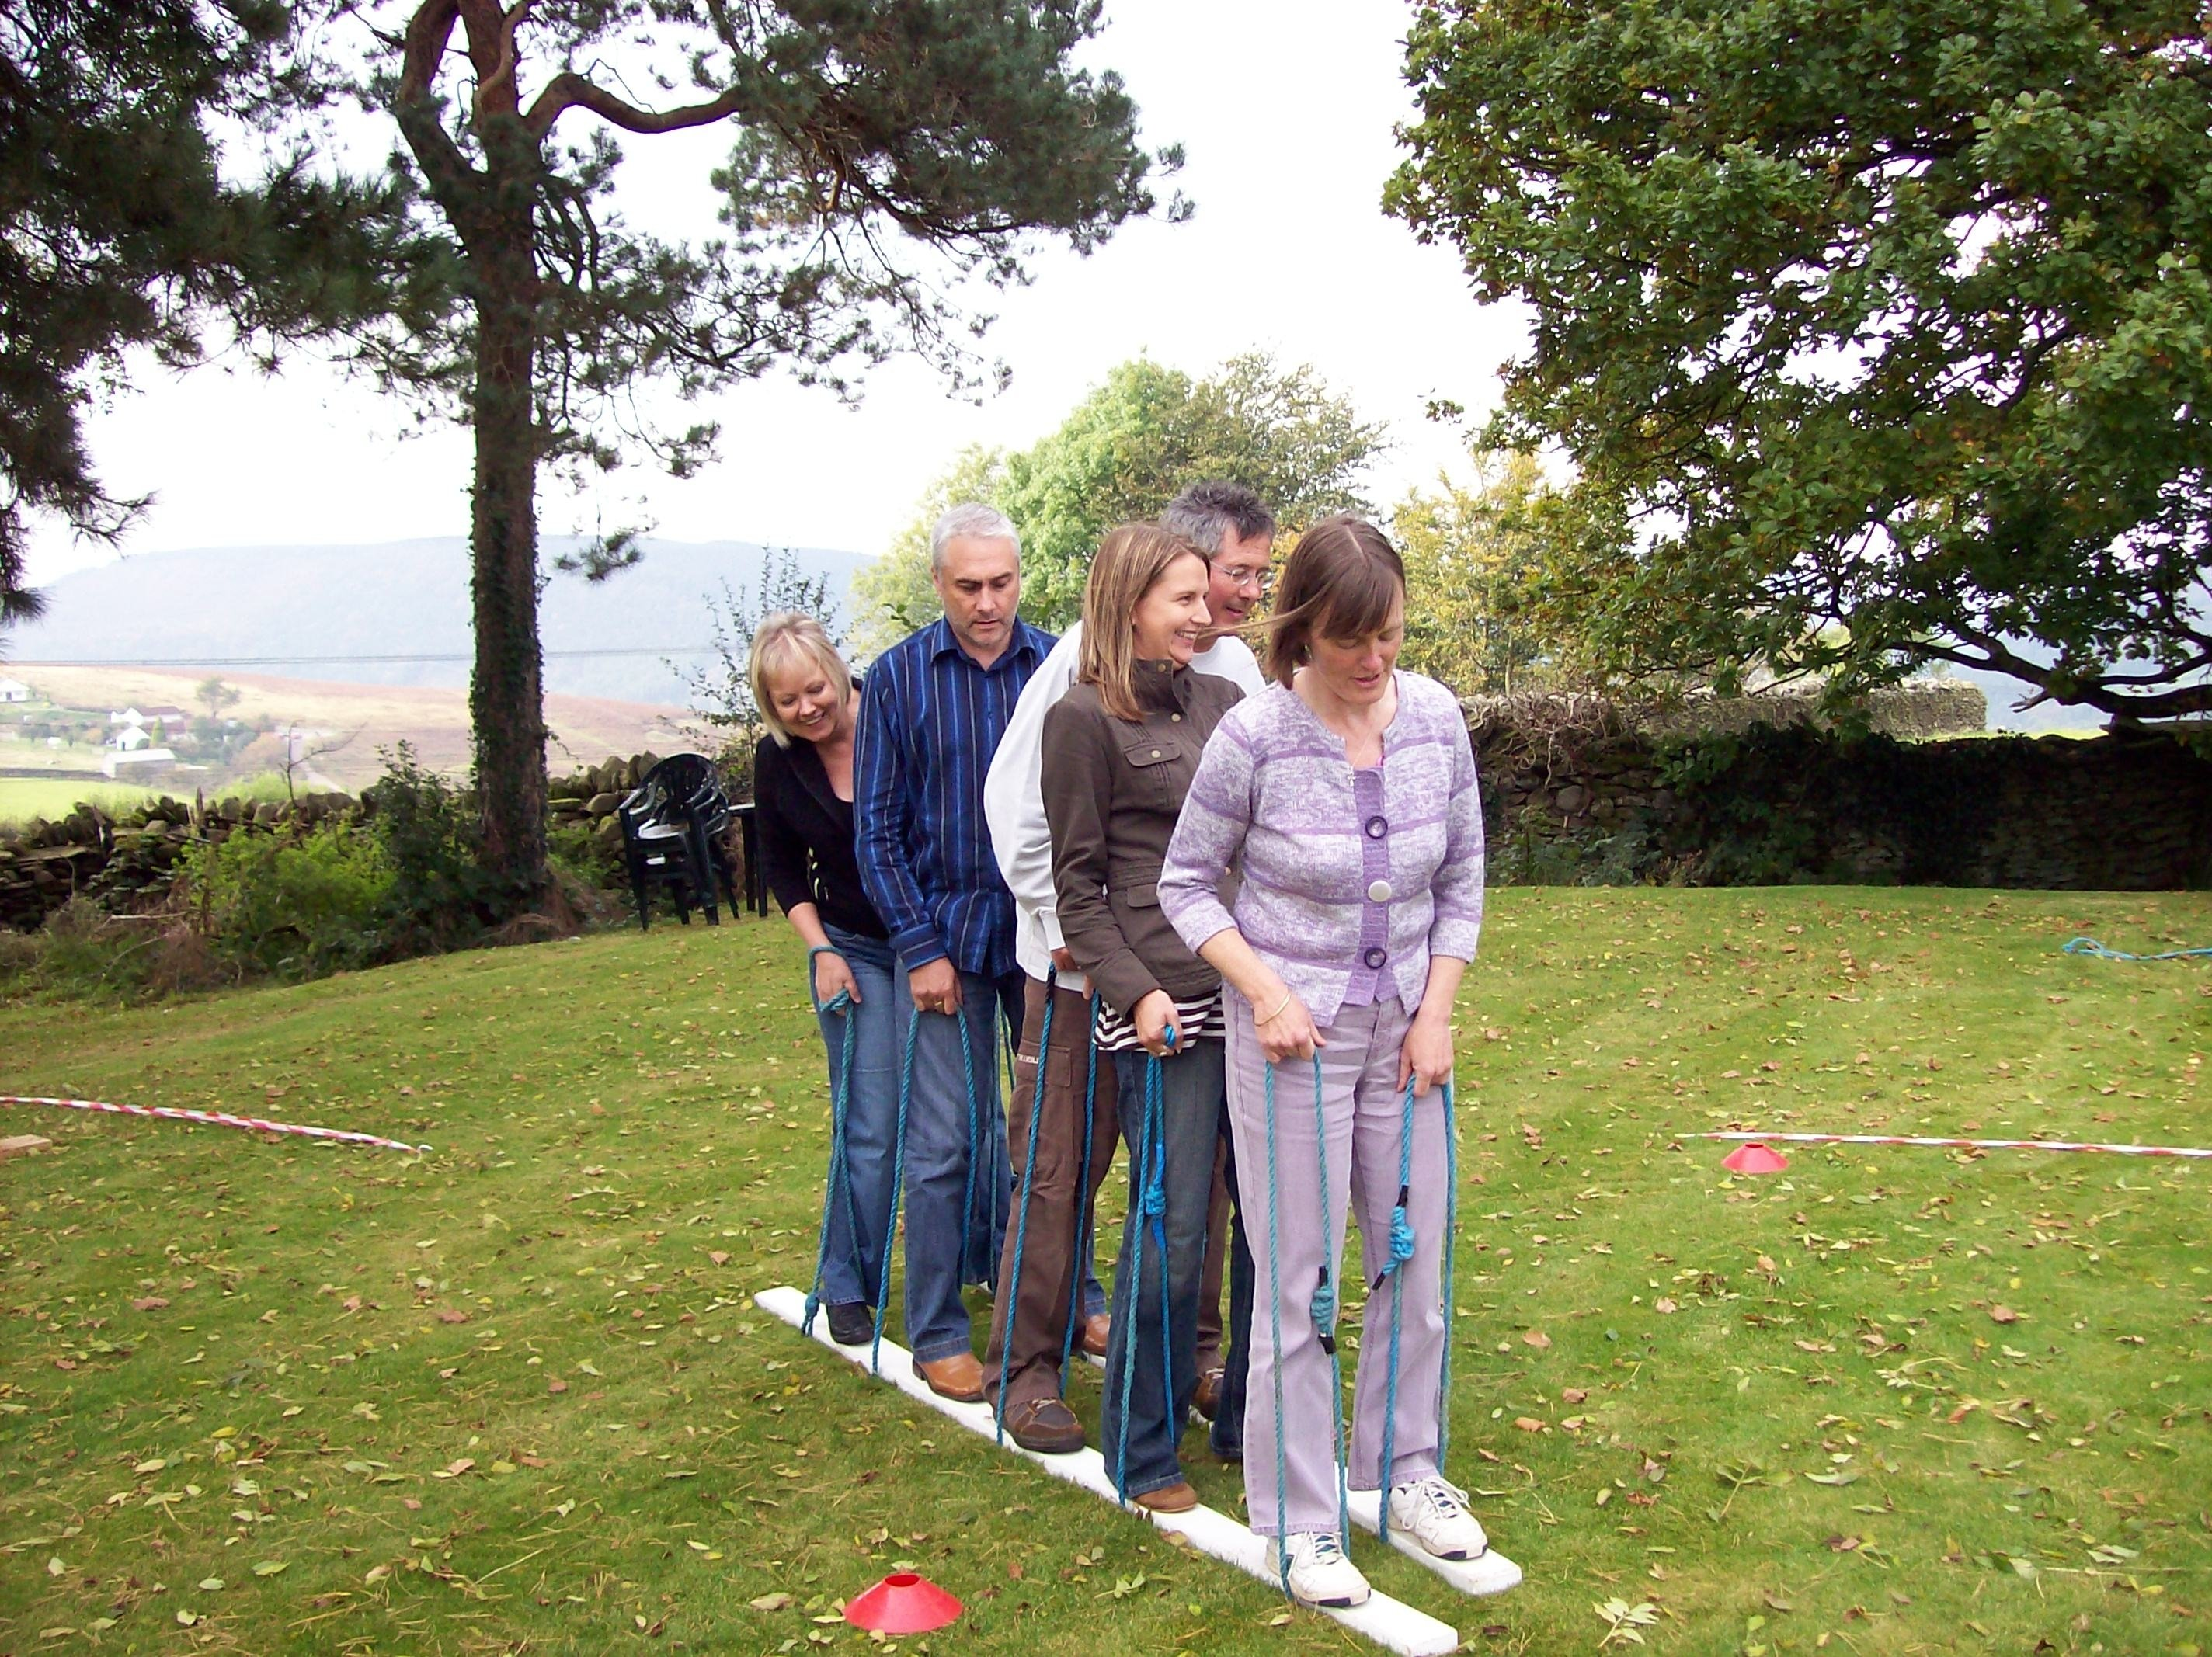 10 Most Recommended Ideas For Team Building Activities team building activities ice breaker games and ideas 4 2021